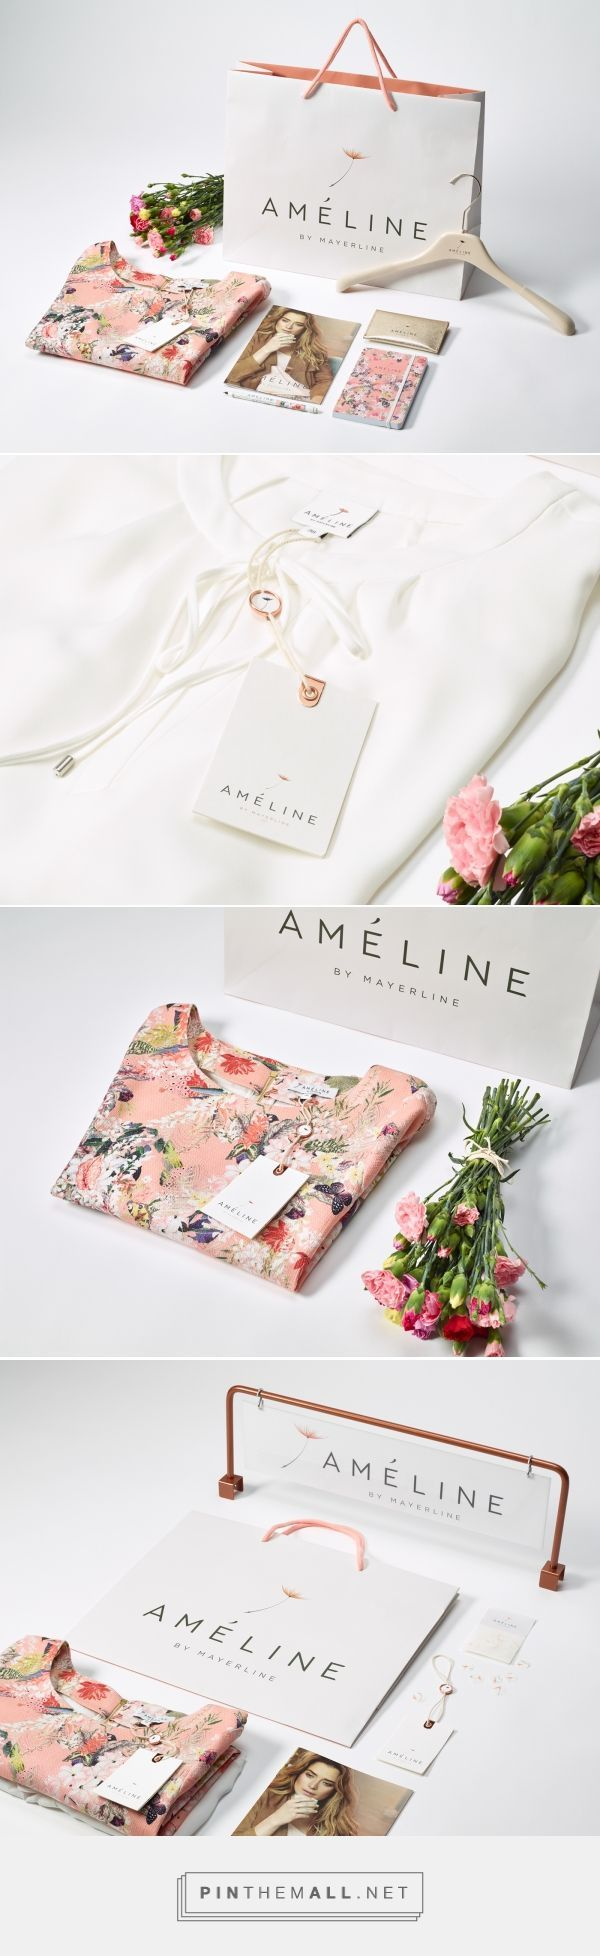 Branding, graphic design and packaging for Ameline By Mayerline brand design on Behance curated by Packaging Diva PD. Pretty fashion design and matching packaging.